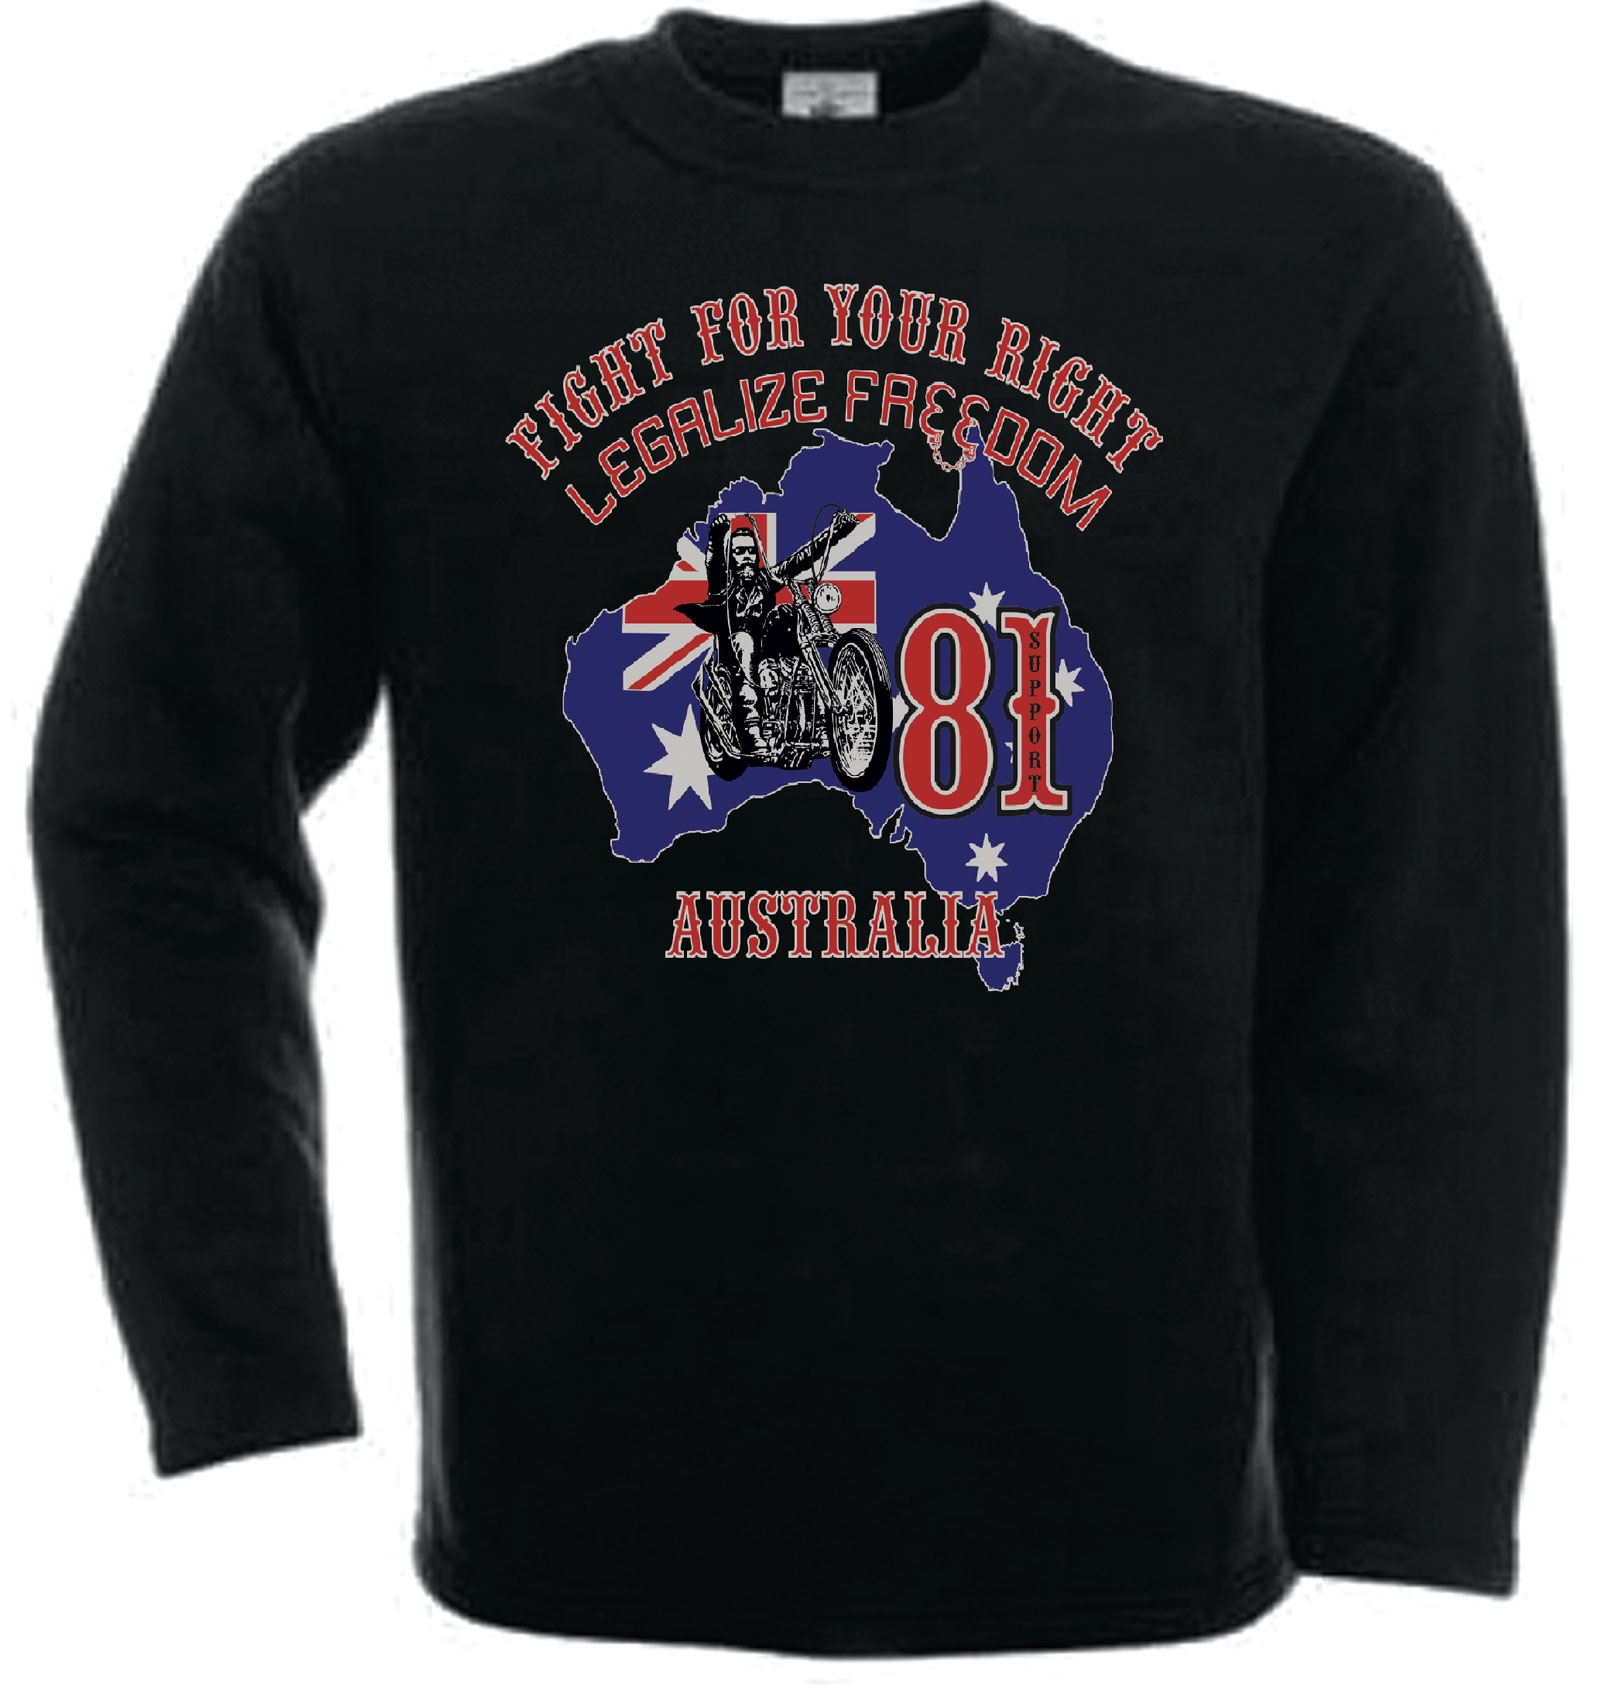 49 hells angels australia bhc support81 sweatshirt black. Black Bedroom Furniture Sets. Home Design Ideas